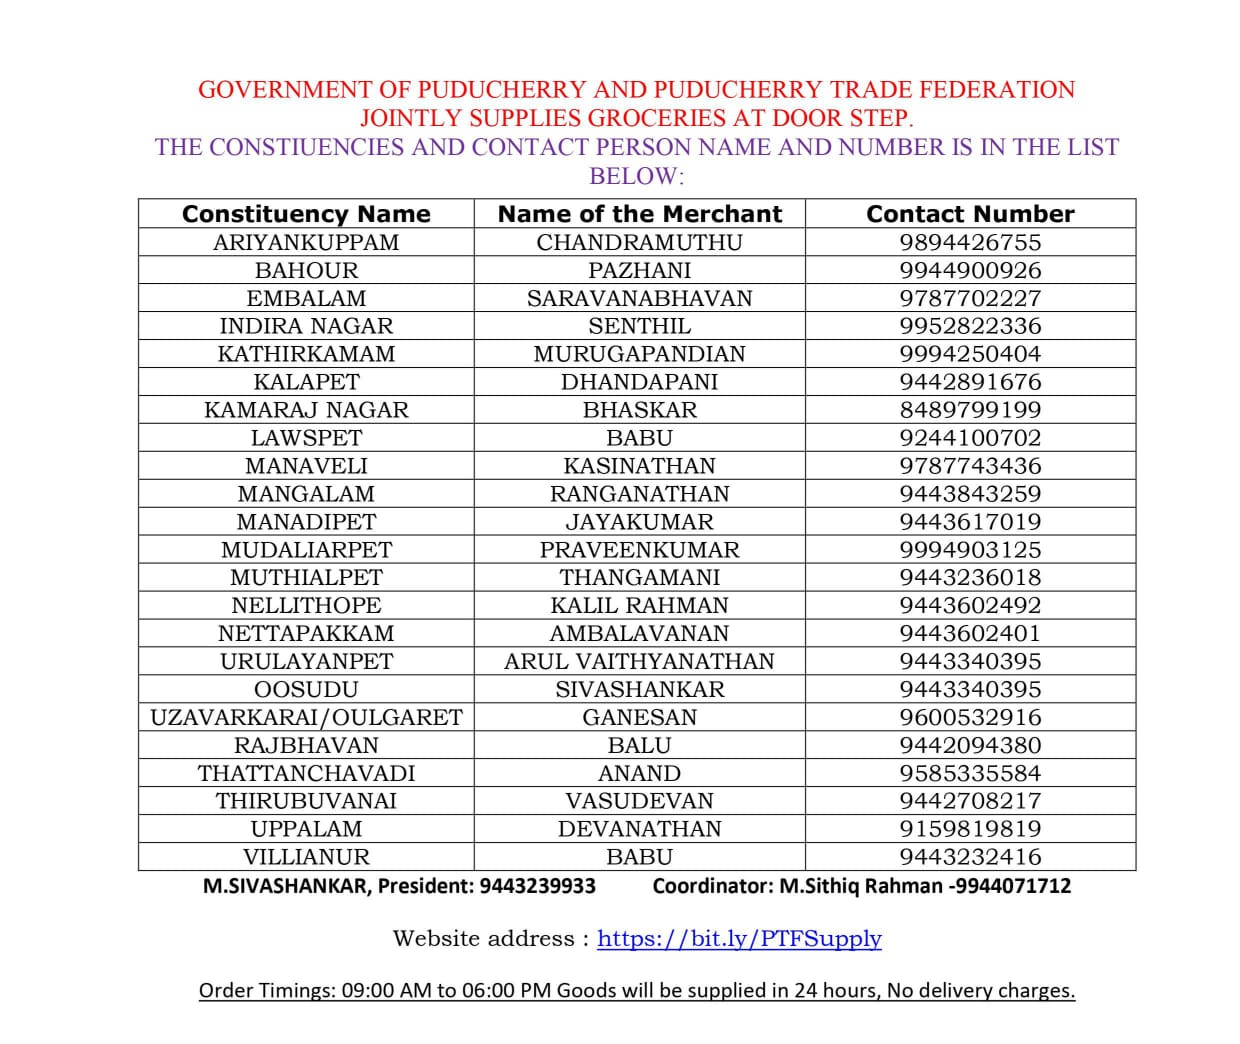 government of pondicherry grocery delivery to doorstep by district admin and pondicherry traders federation